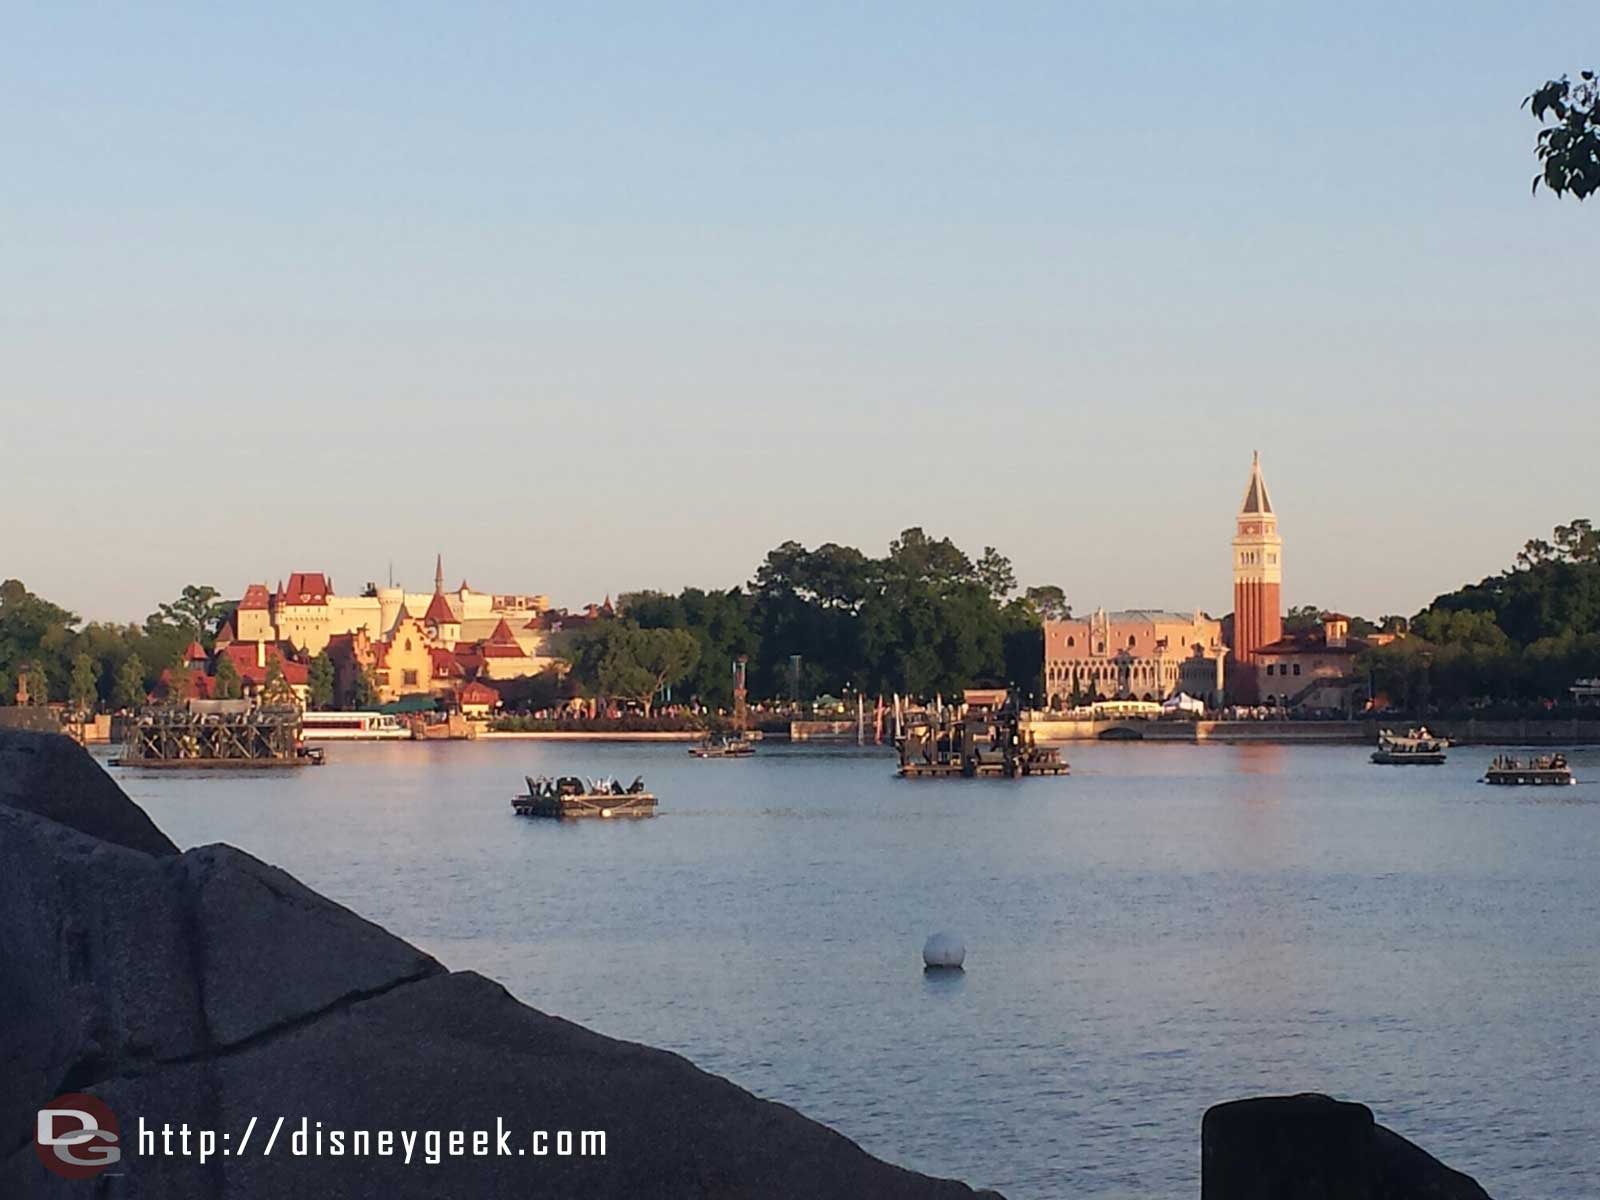 Made it across with a minute to spare.. looking across World Showcase Lagoon